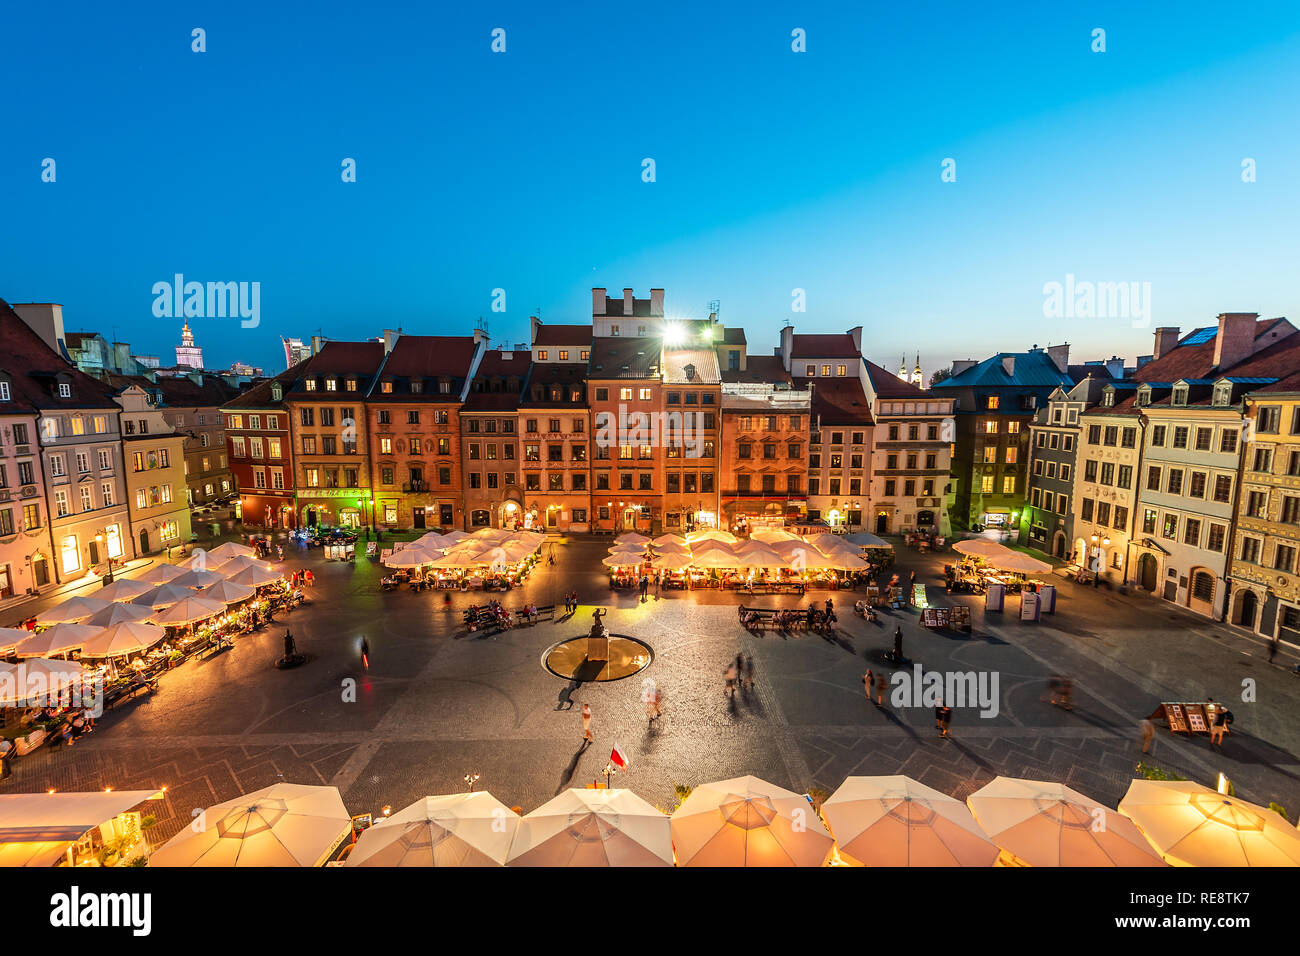 Warsaw, Poland - August 22, 2018: Cityscape with high angle view of architecture rooftop buildings and dark sky in old town market square at night Stock Photo